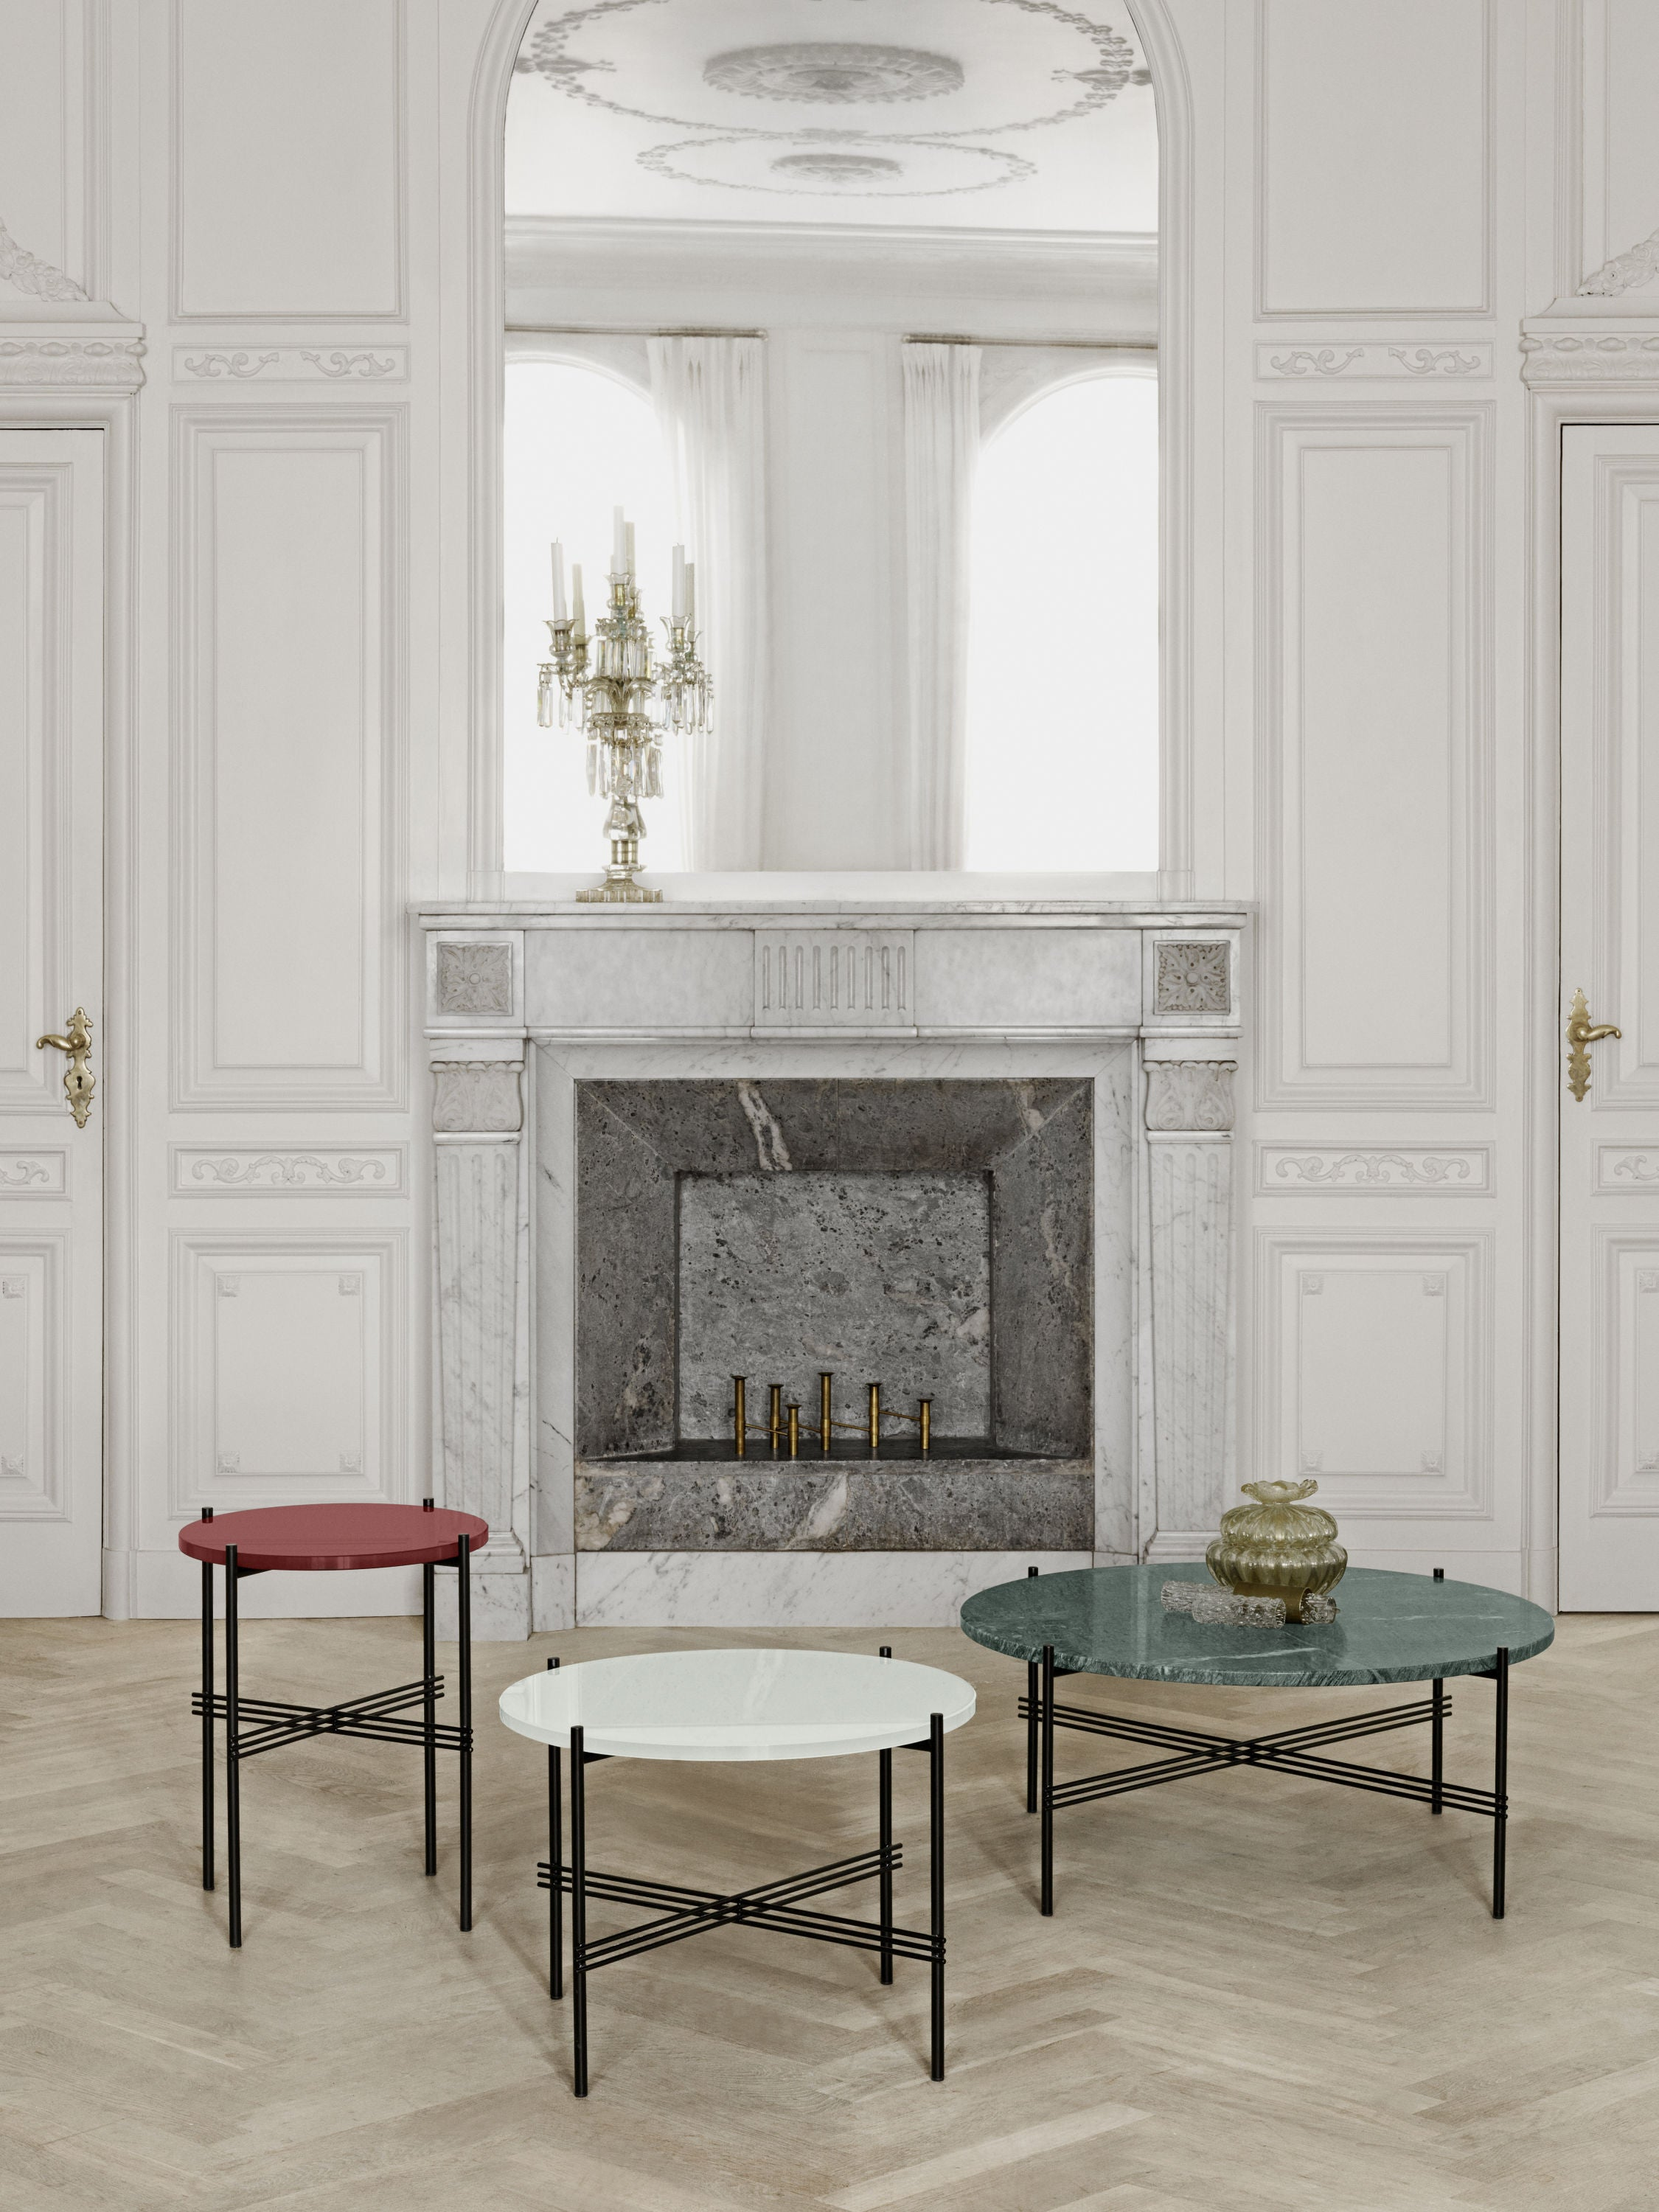 TS Coffee Table - Dia 40 Brass base, marble white top fra GUBI